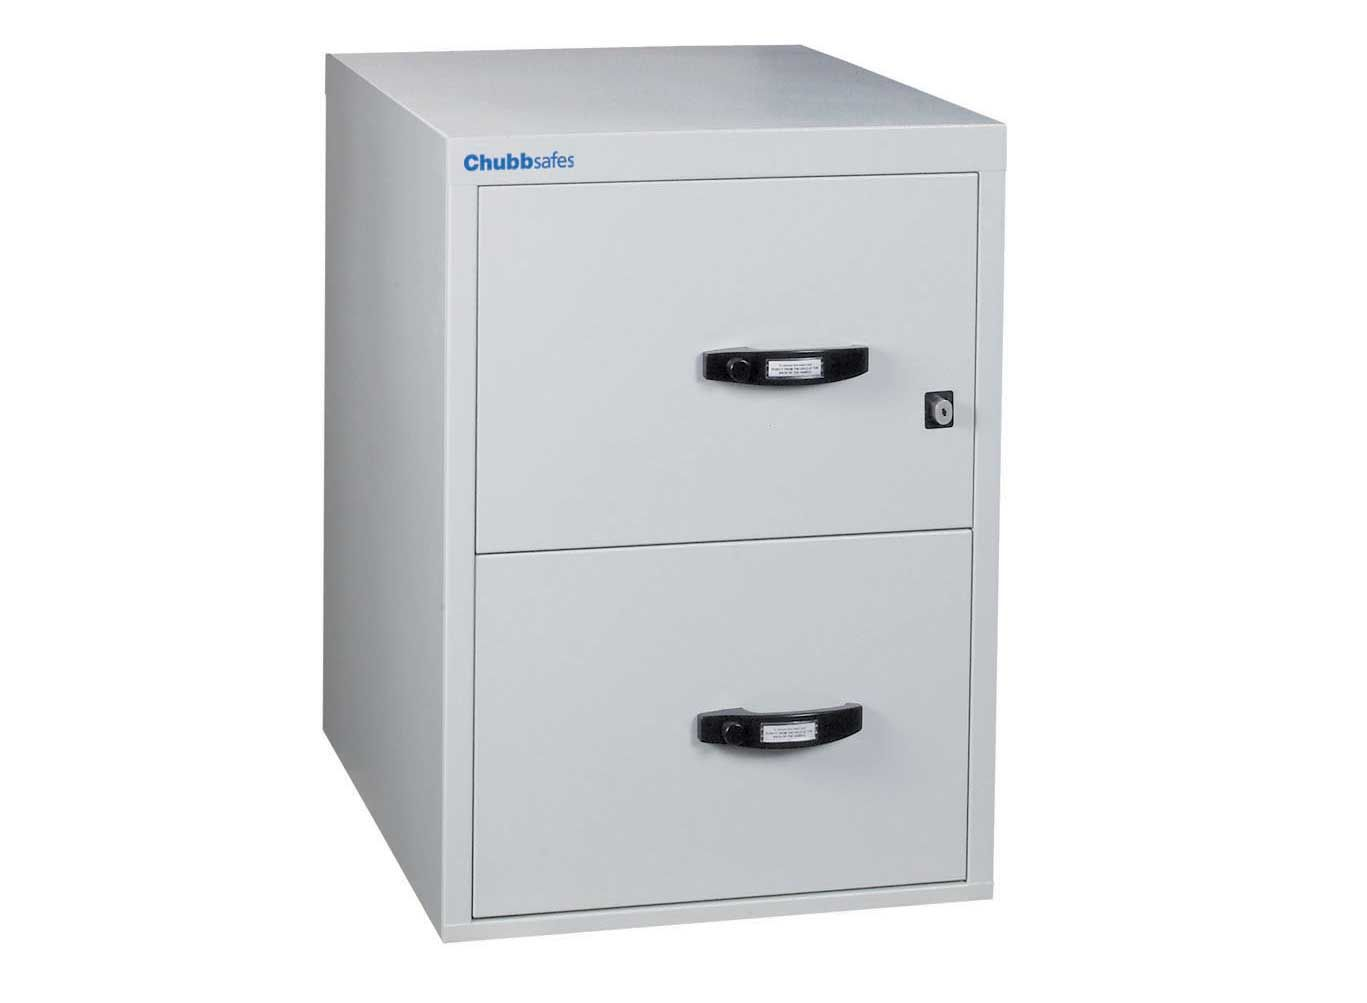 Chubbsafes 2 Drawer Fireproof Filing Cabinets